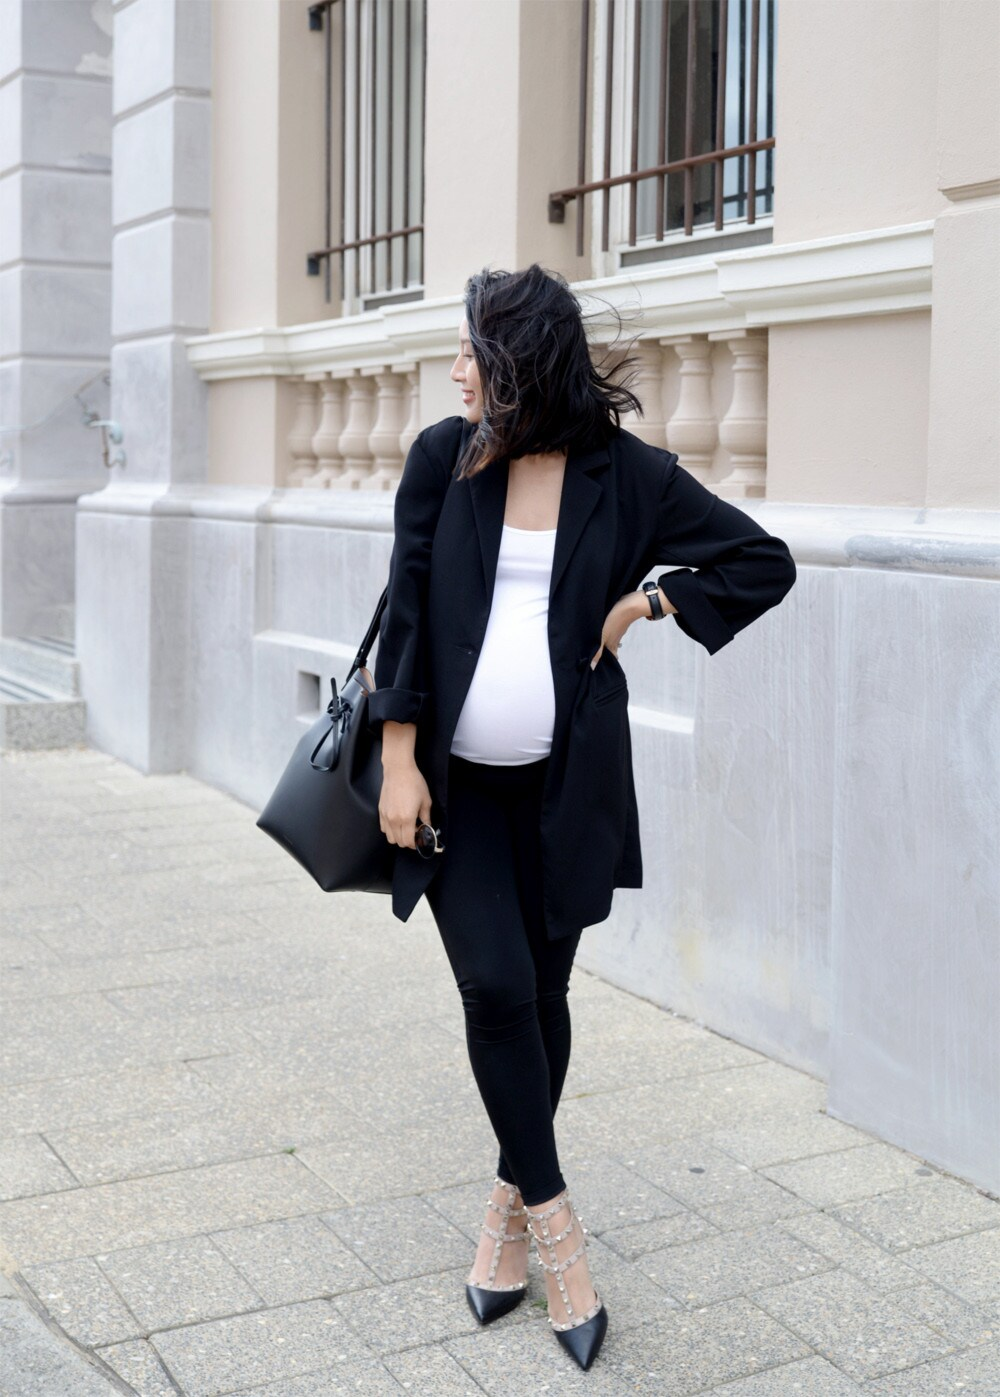 ca33f912c3107 How to avoid buying maternity clothes during pregnancy - Vogue Australia